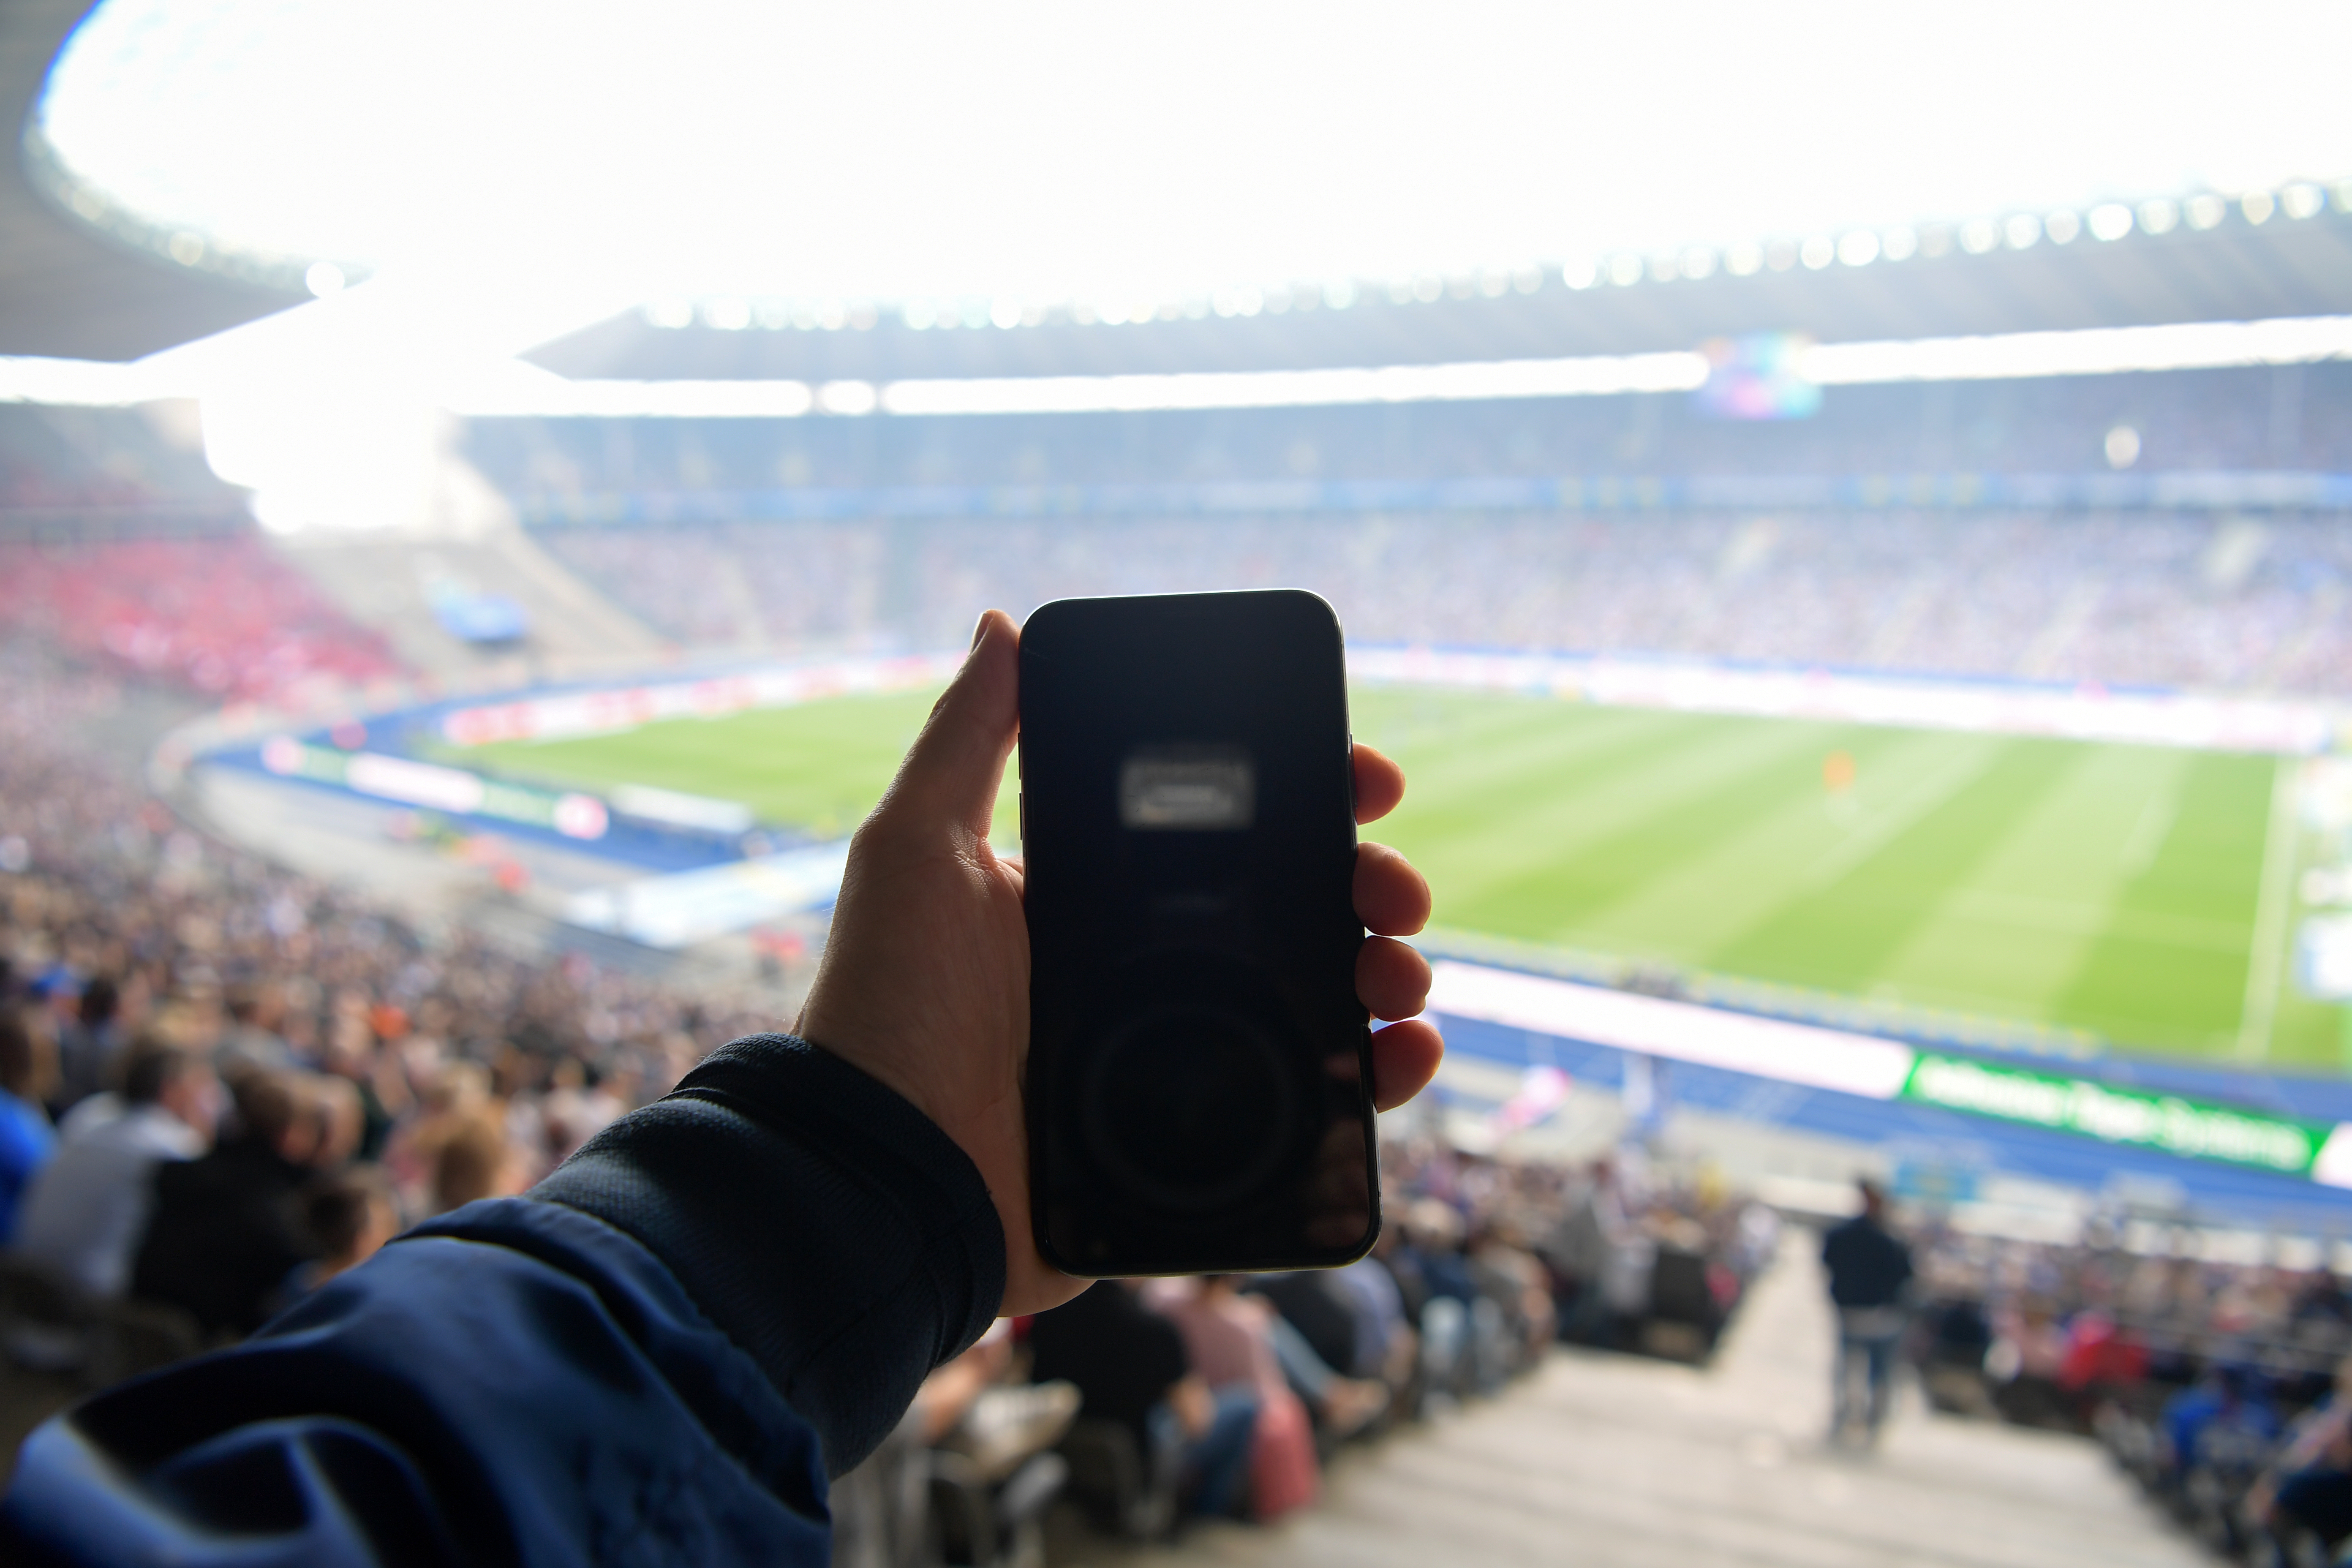 A phone being held up inside the Olympiastadion